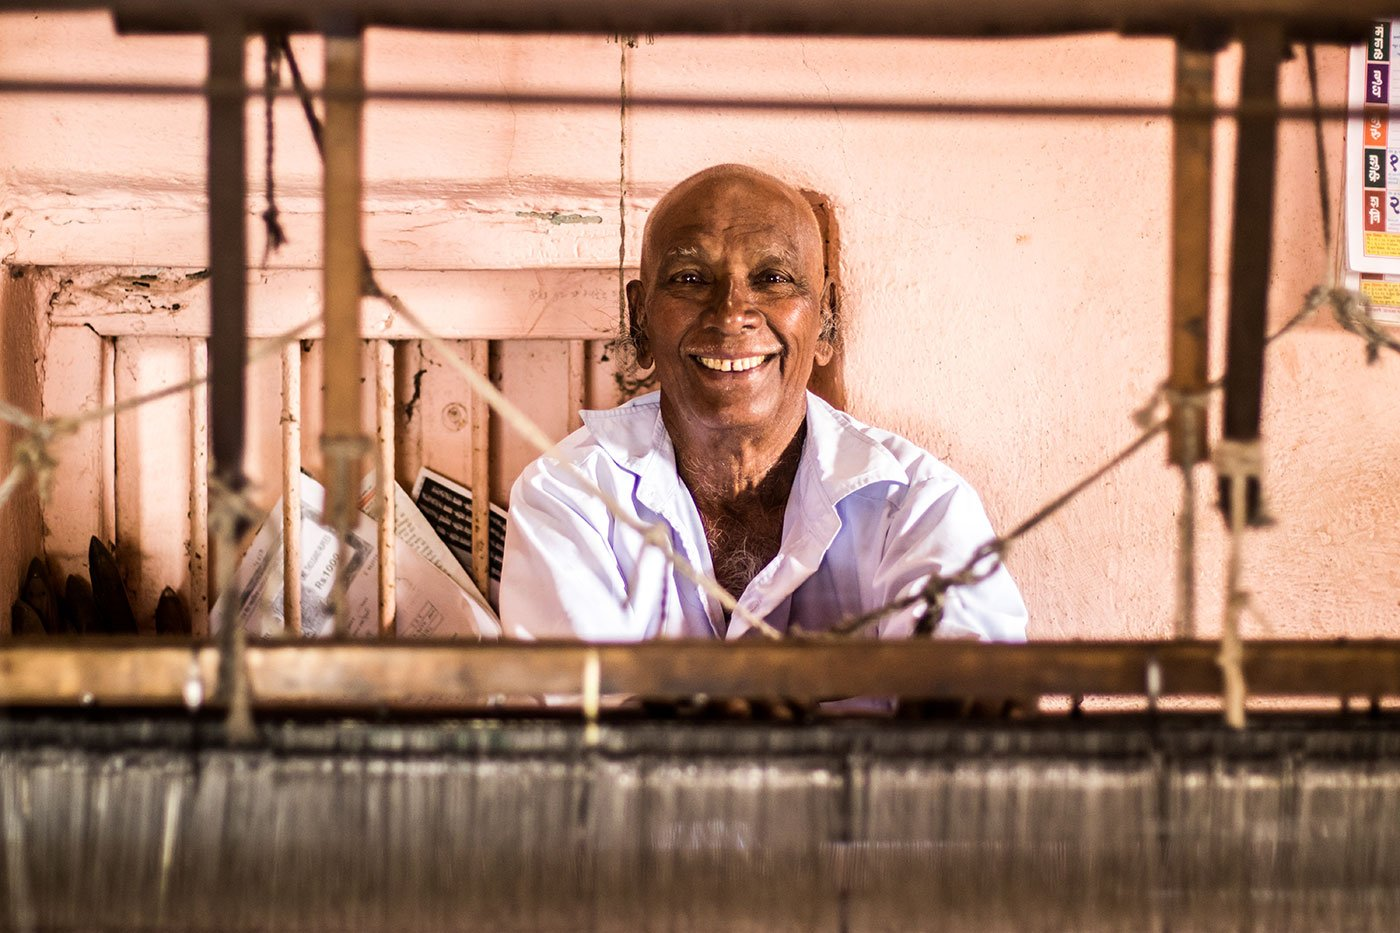 Vasant Tambe is the among the last four handloom weavers in the Rendal village alive